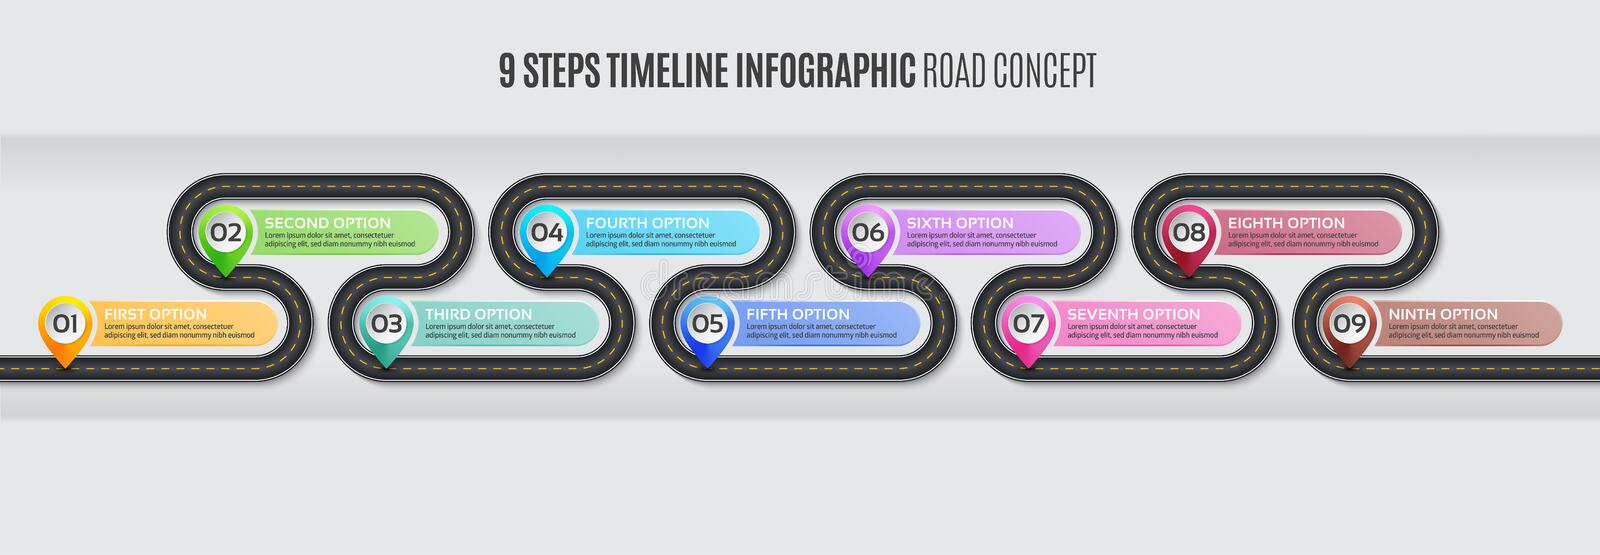 Navigation map infographic 9 steps timeline road concept. Navigation map infographic 9 steps timeline concept. Vector illustration winding road. Color swatches vector illustration